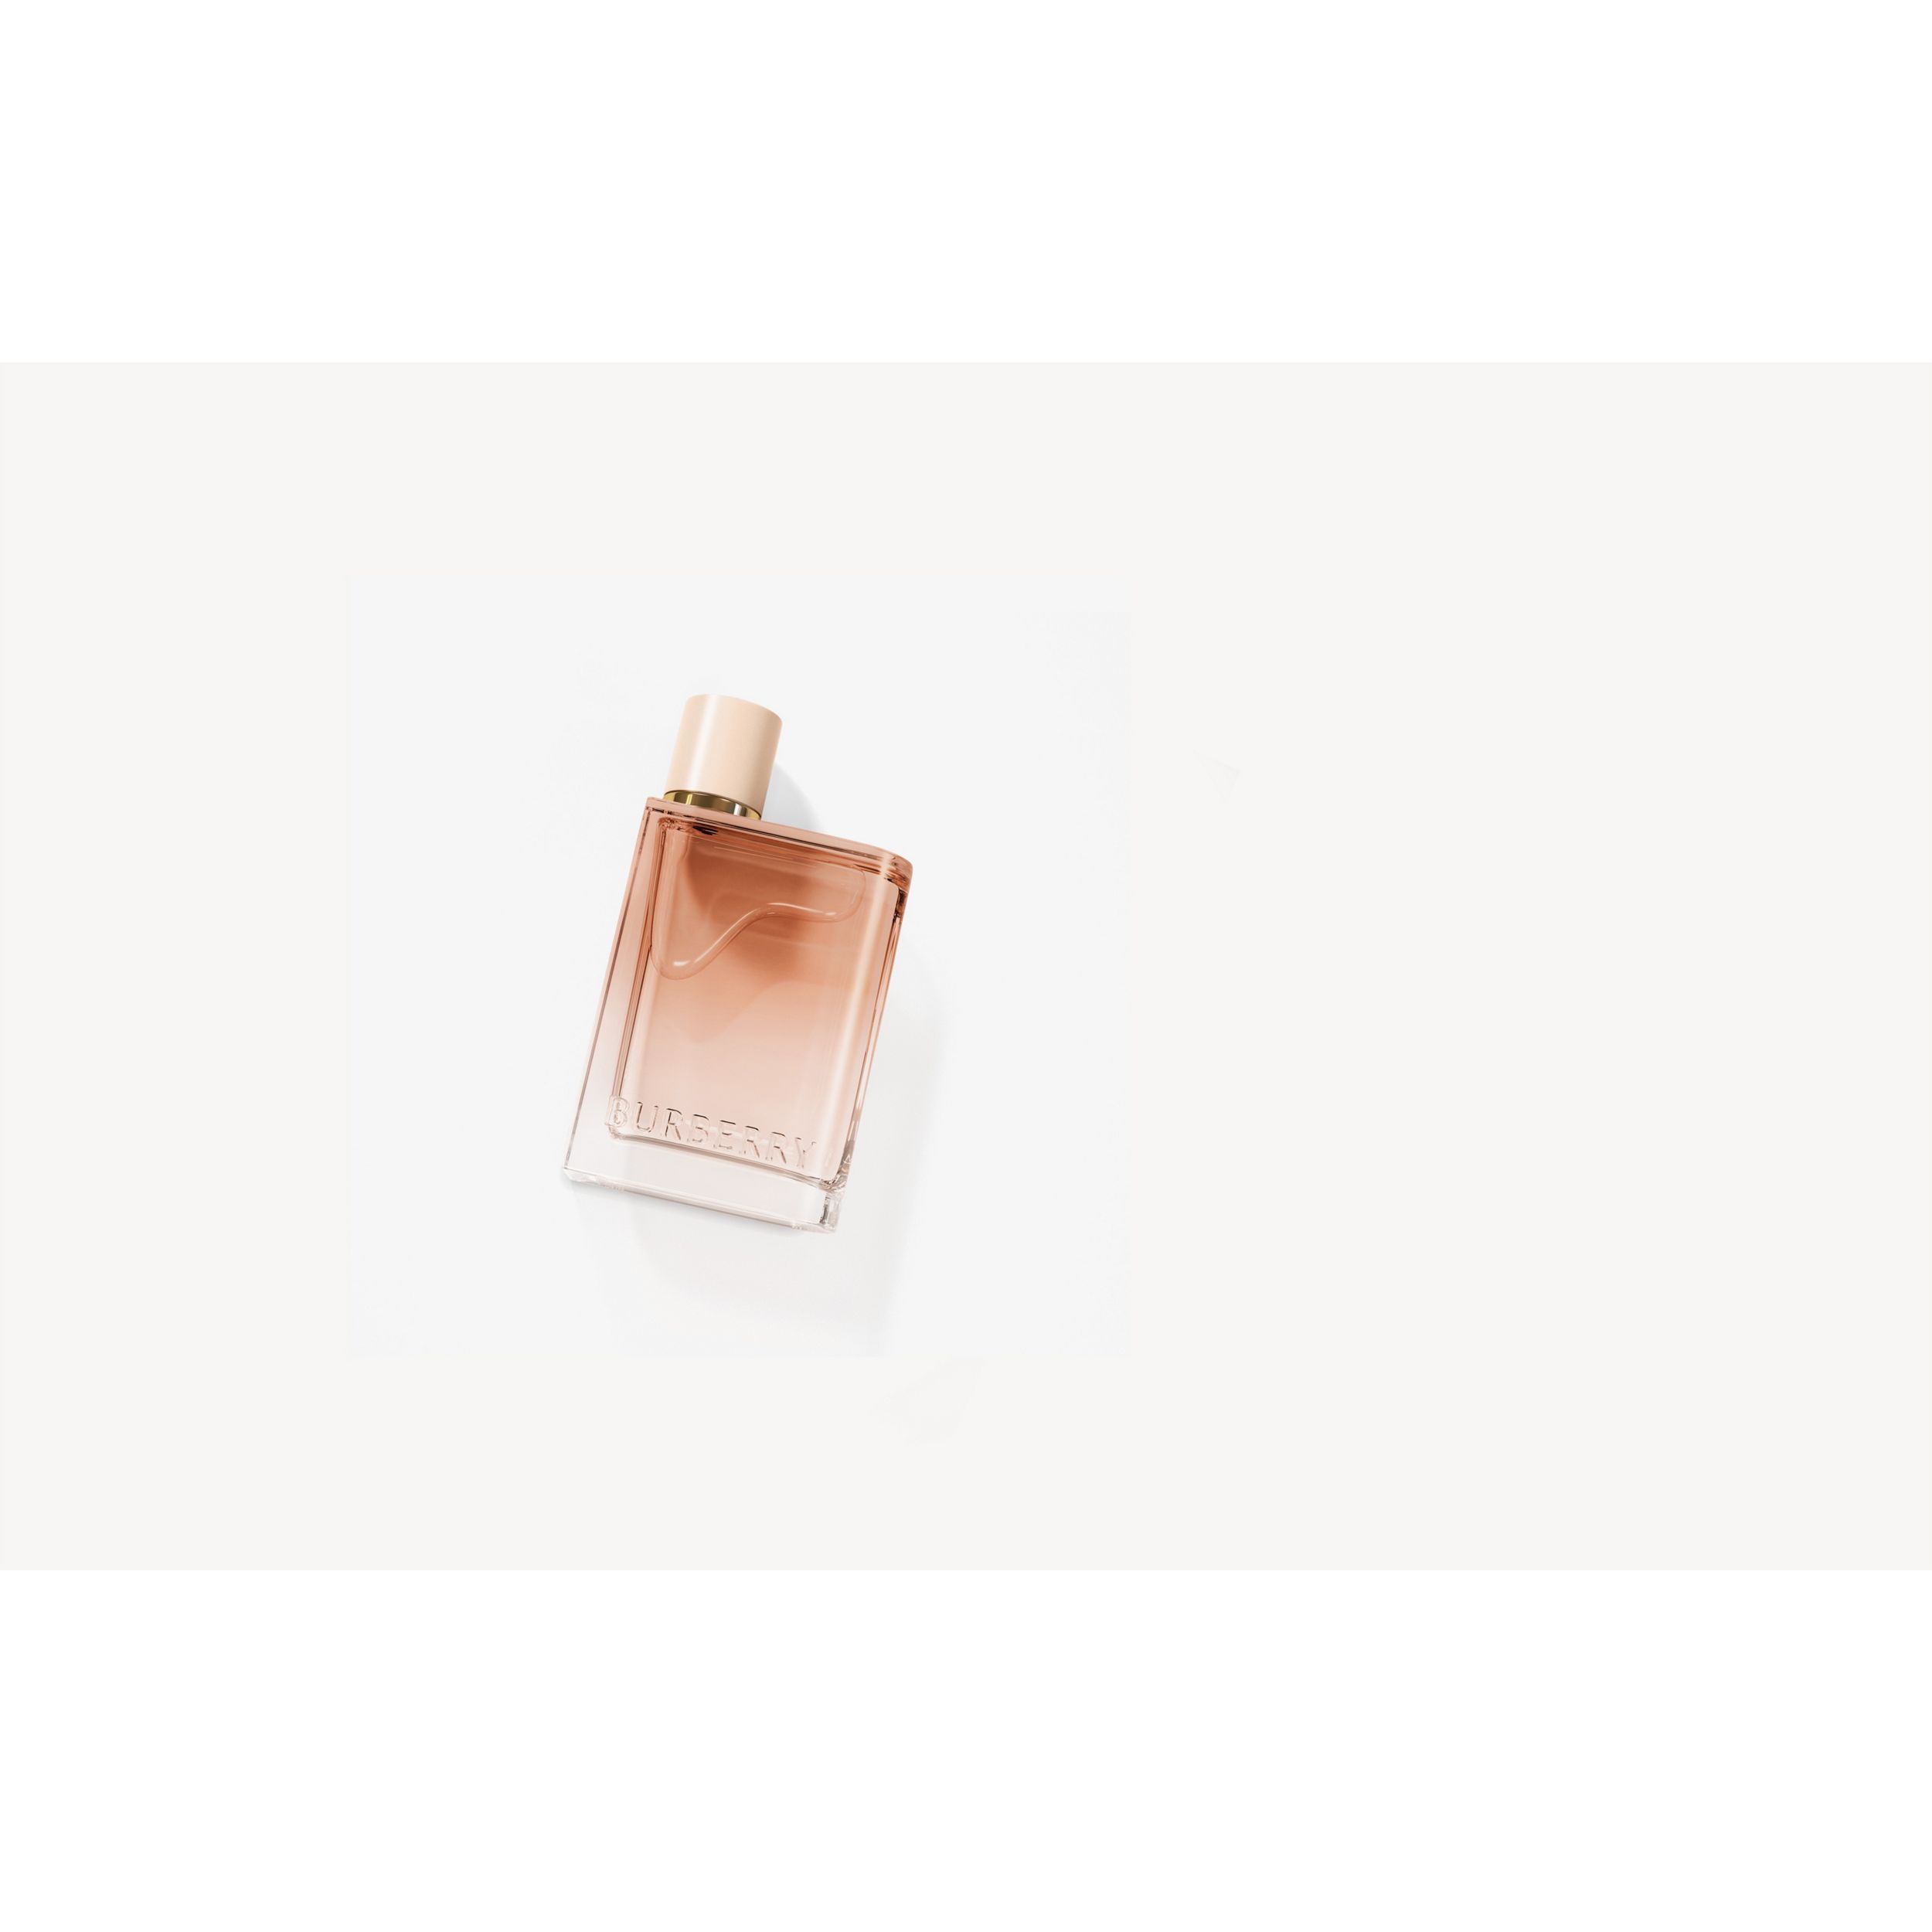 Her Intense Eau de Parfum 100ml - Women | Burberry Australia - 2